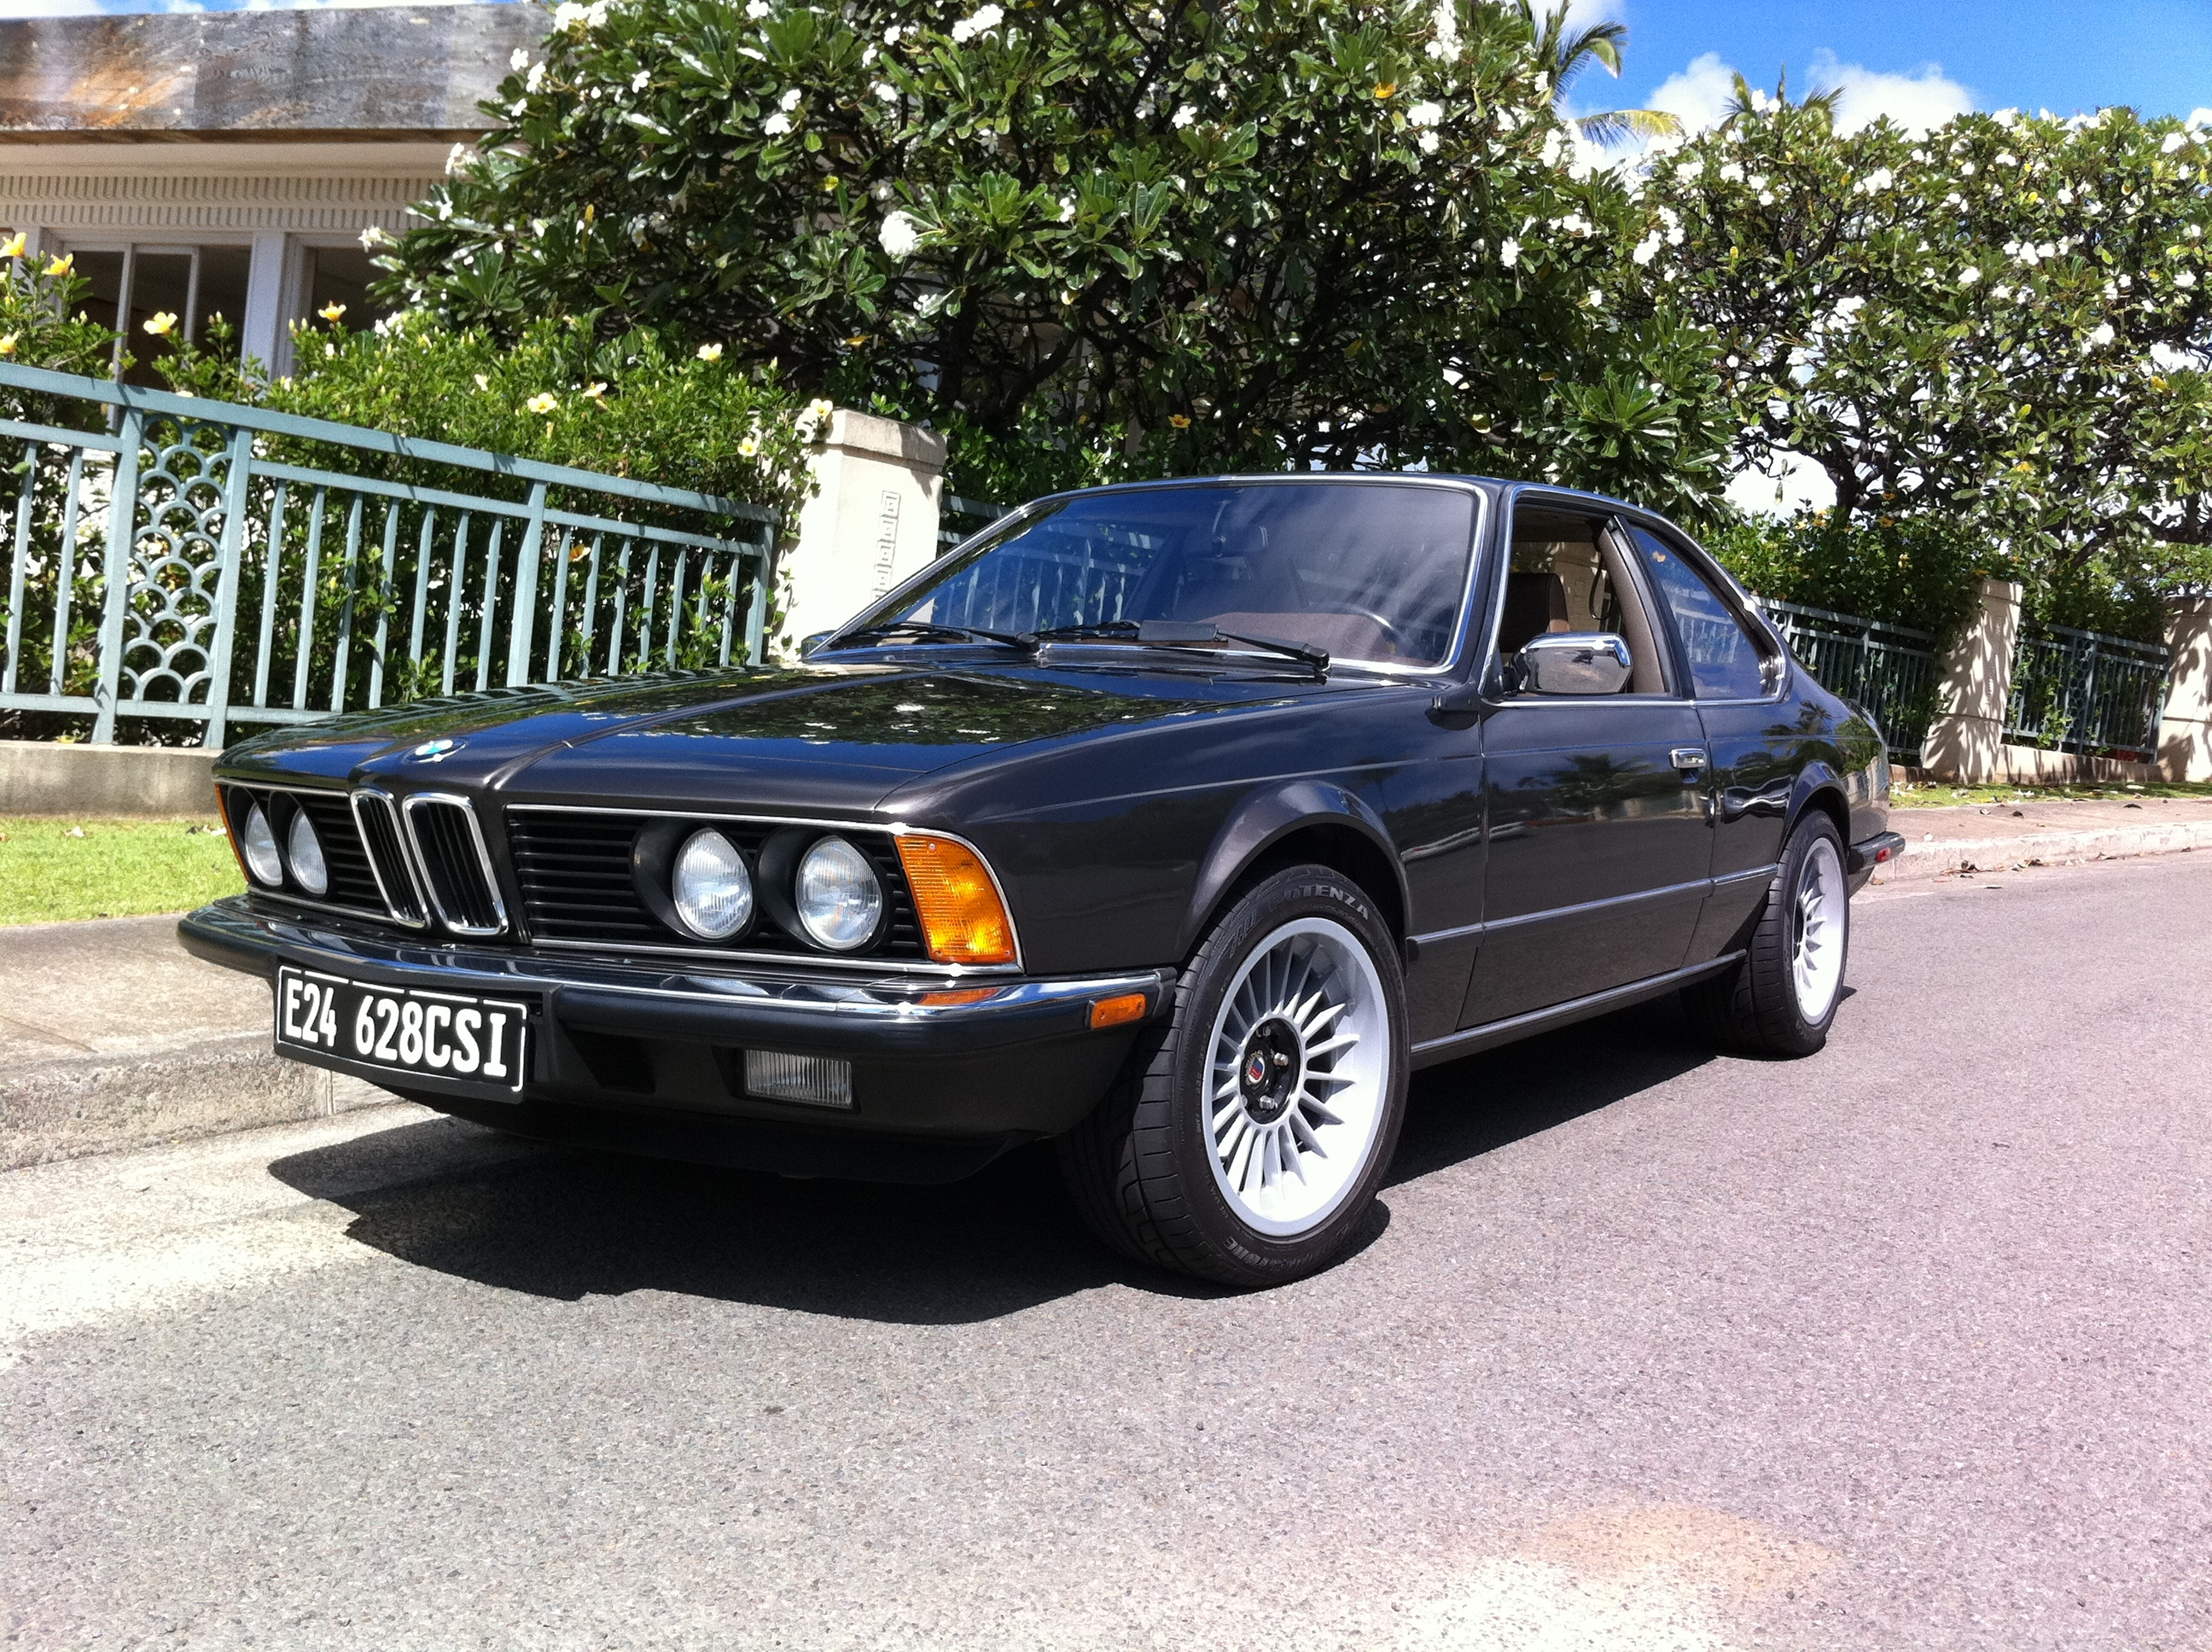 BMW 6 series 628CSi 1985 photo - 3